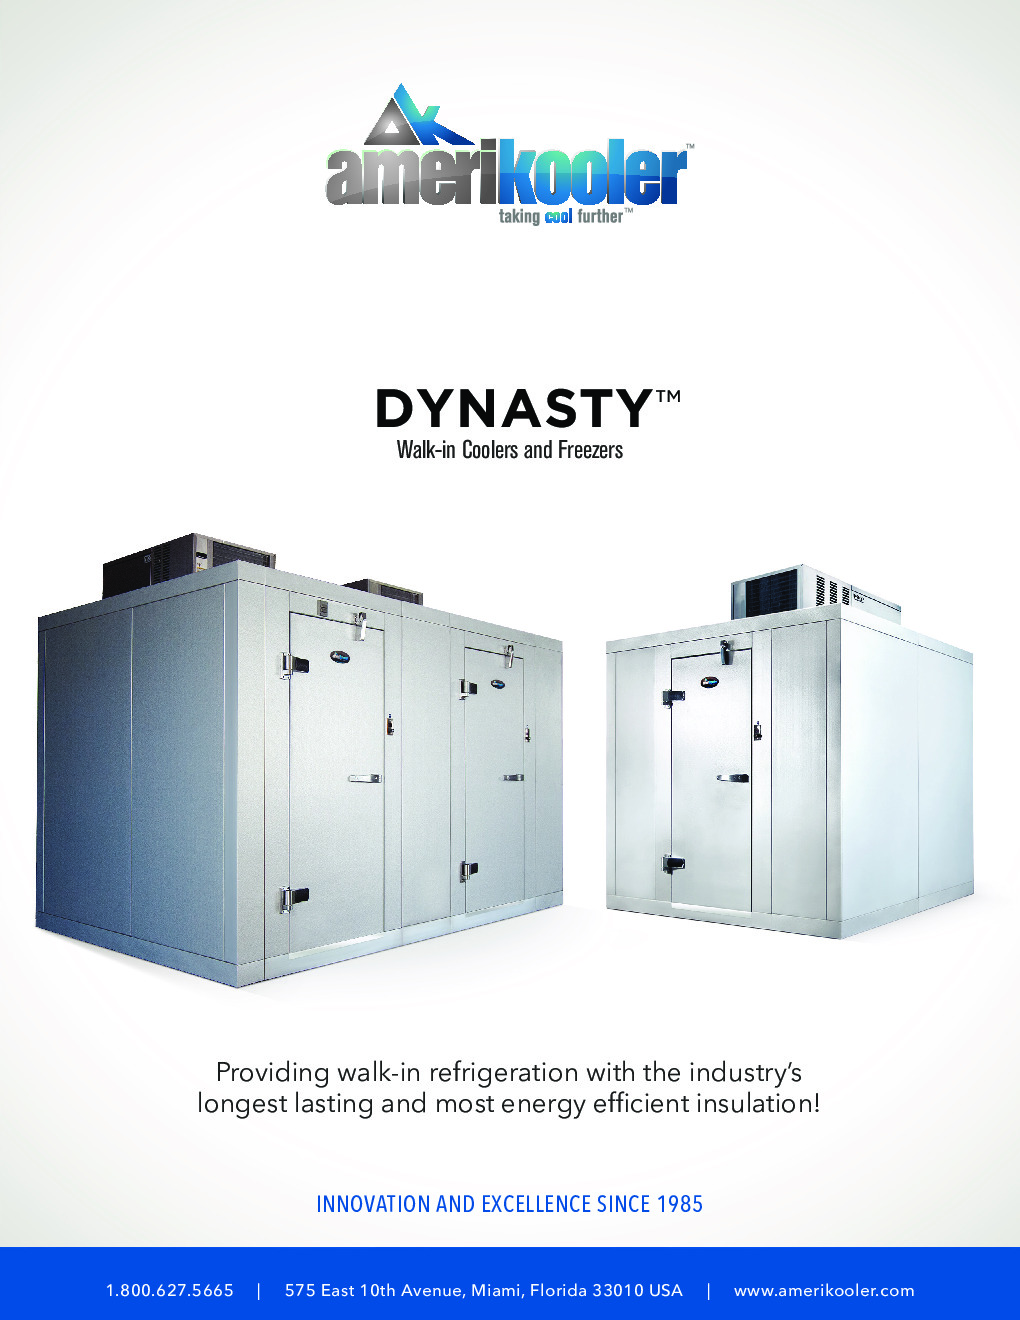 AmeriKooler DW091677N-6/10-RM 9' X 16' Walk-In Cooler, 10' L Cooler without Floor and 6' L Freezer, Remote